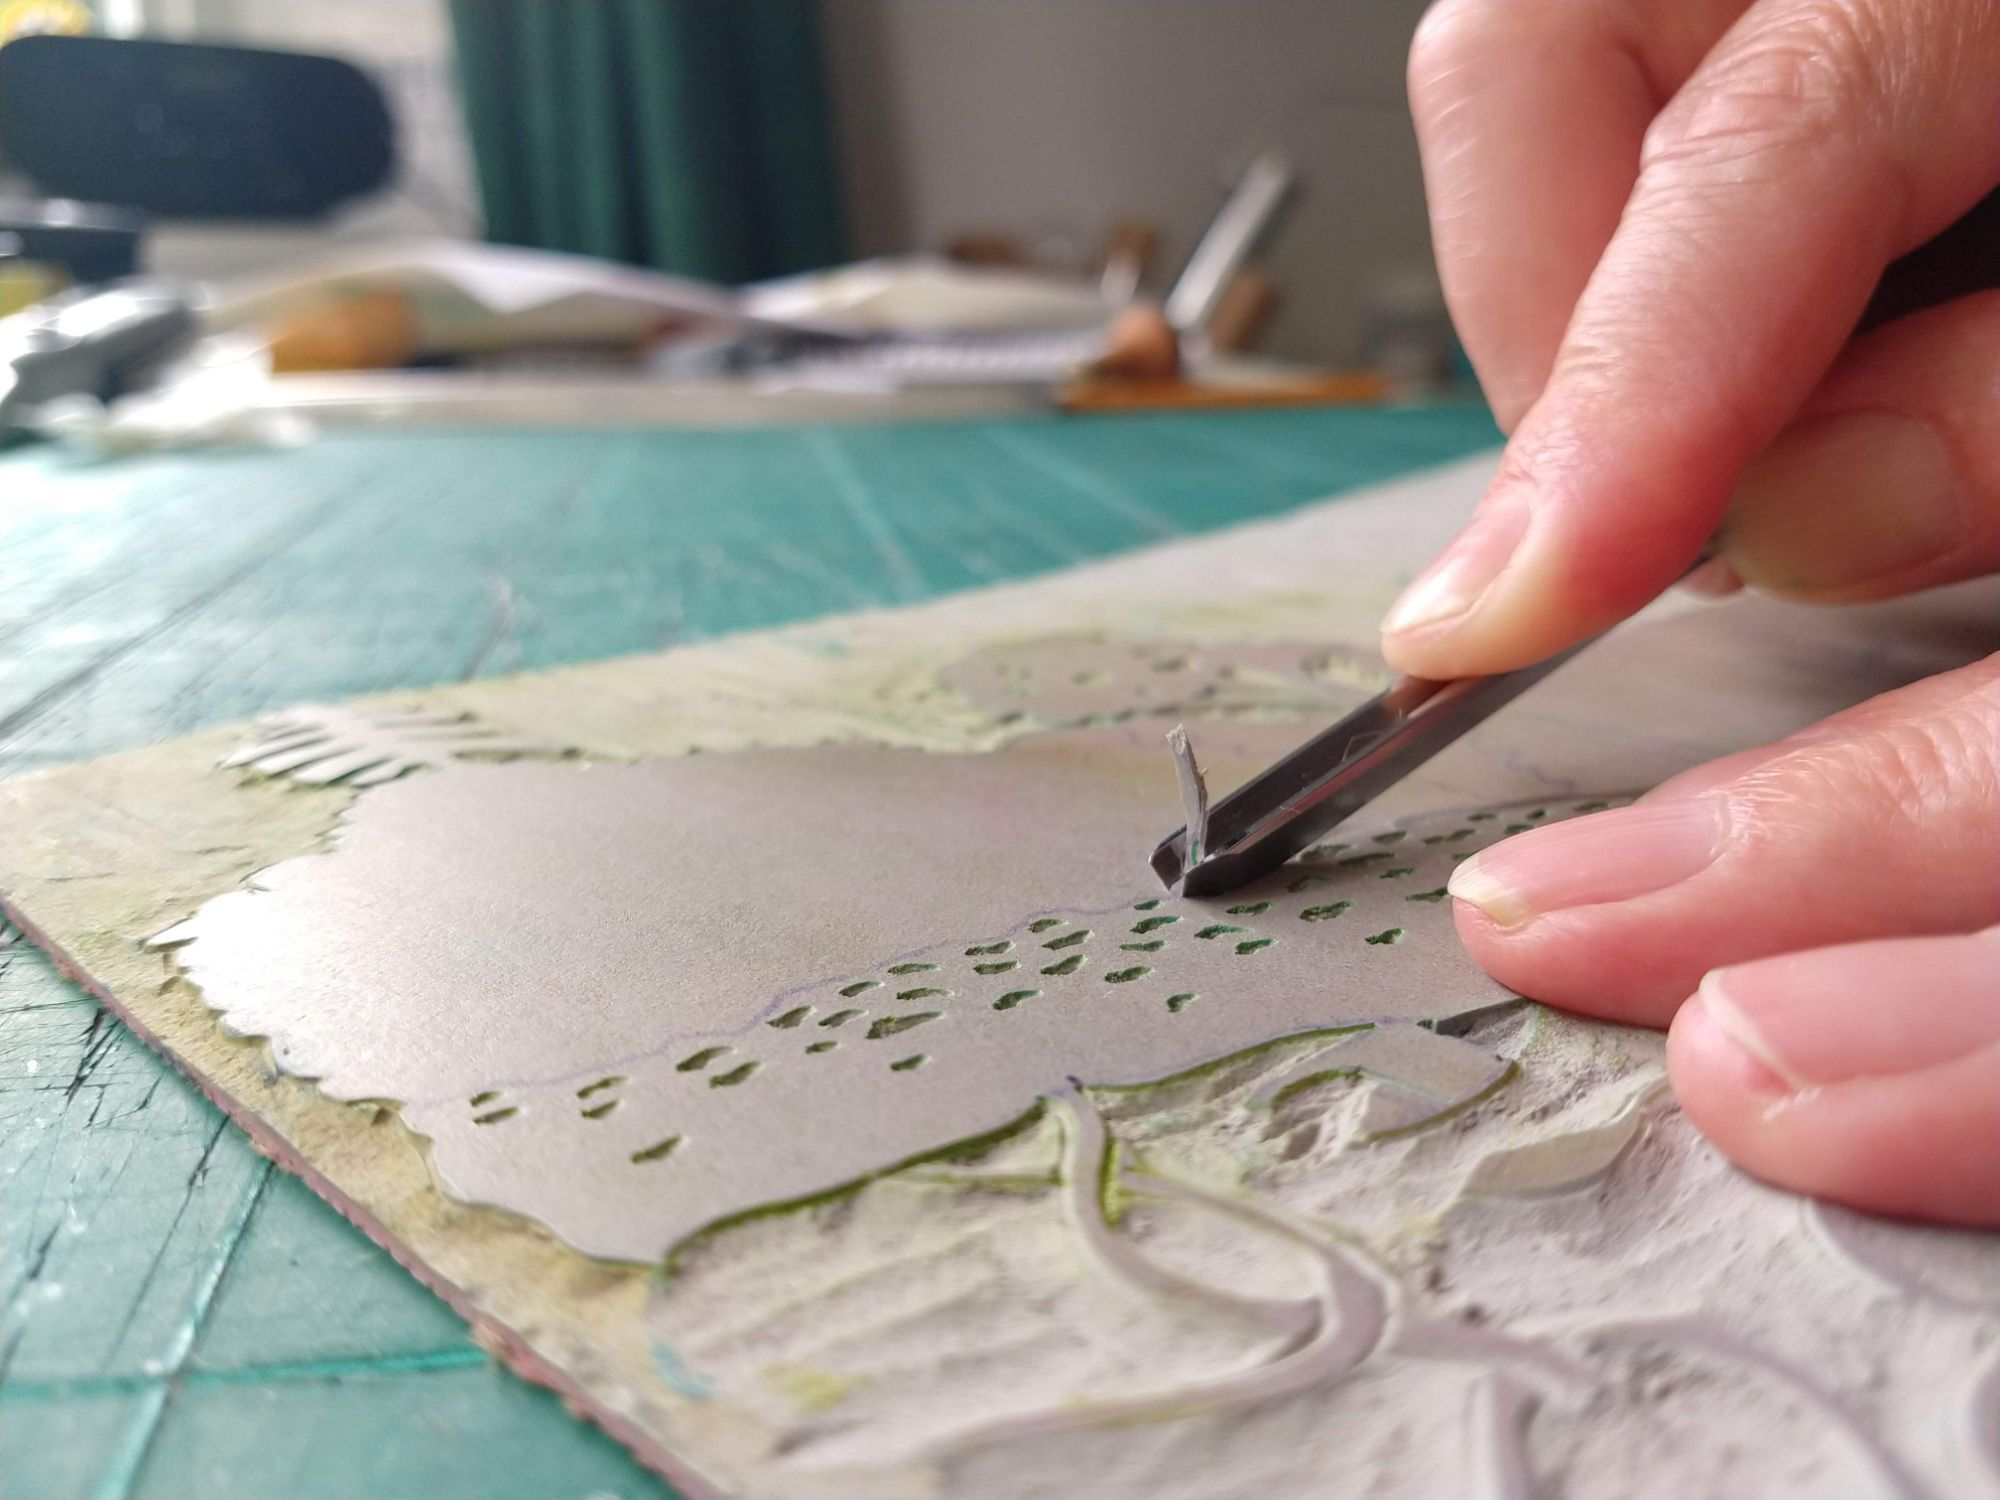 hand carving lino